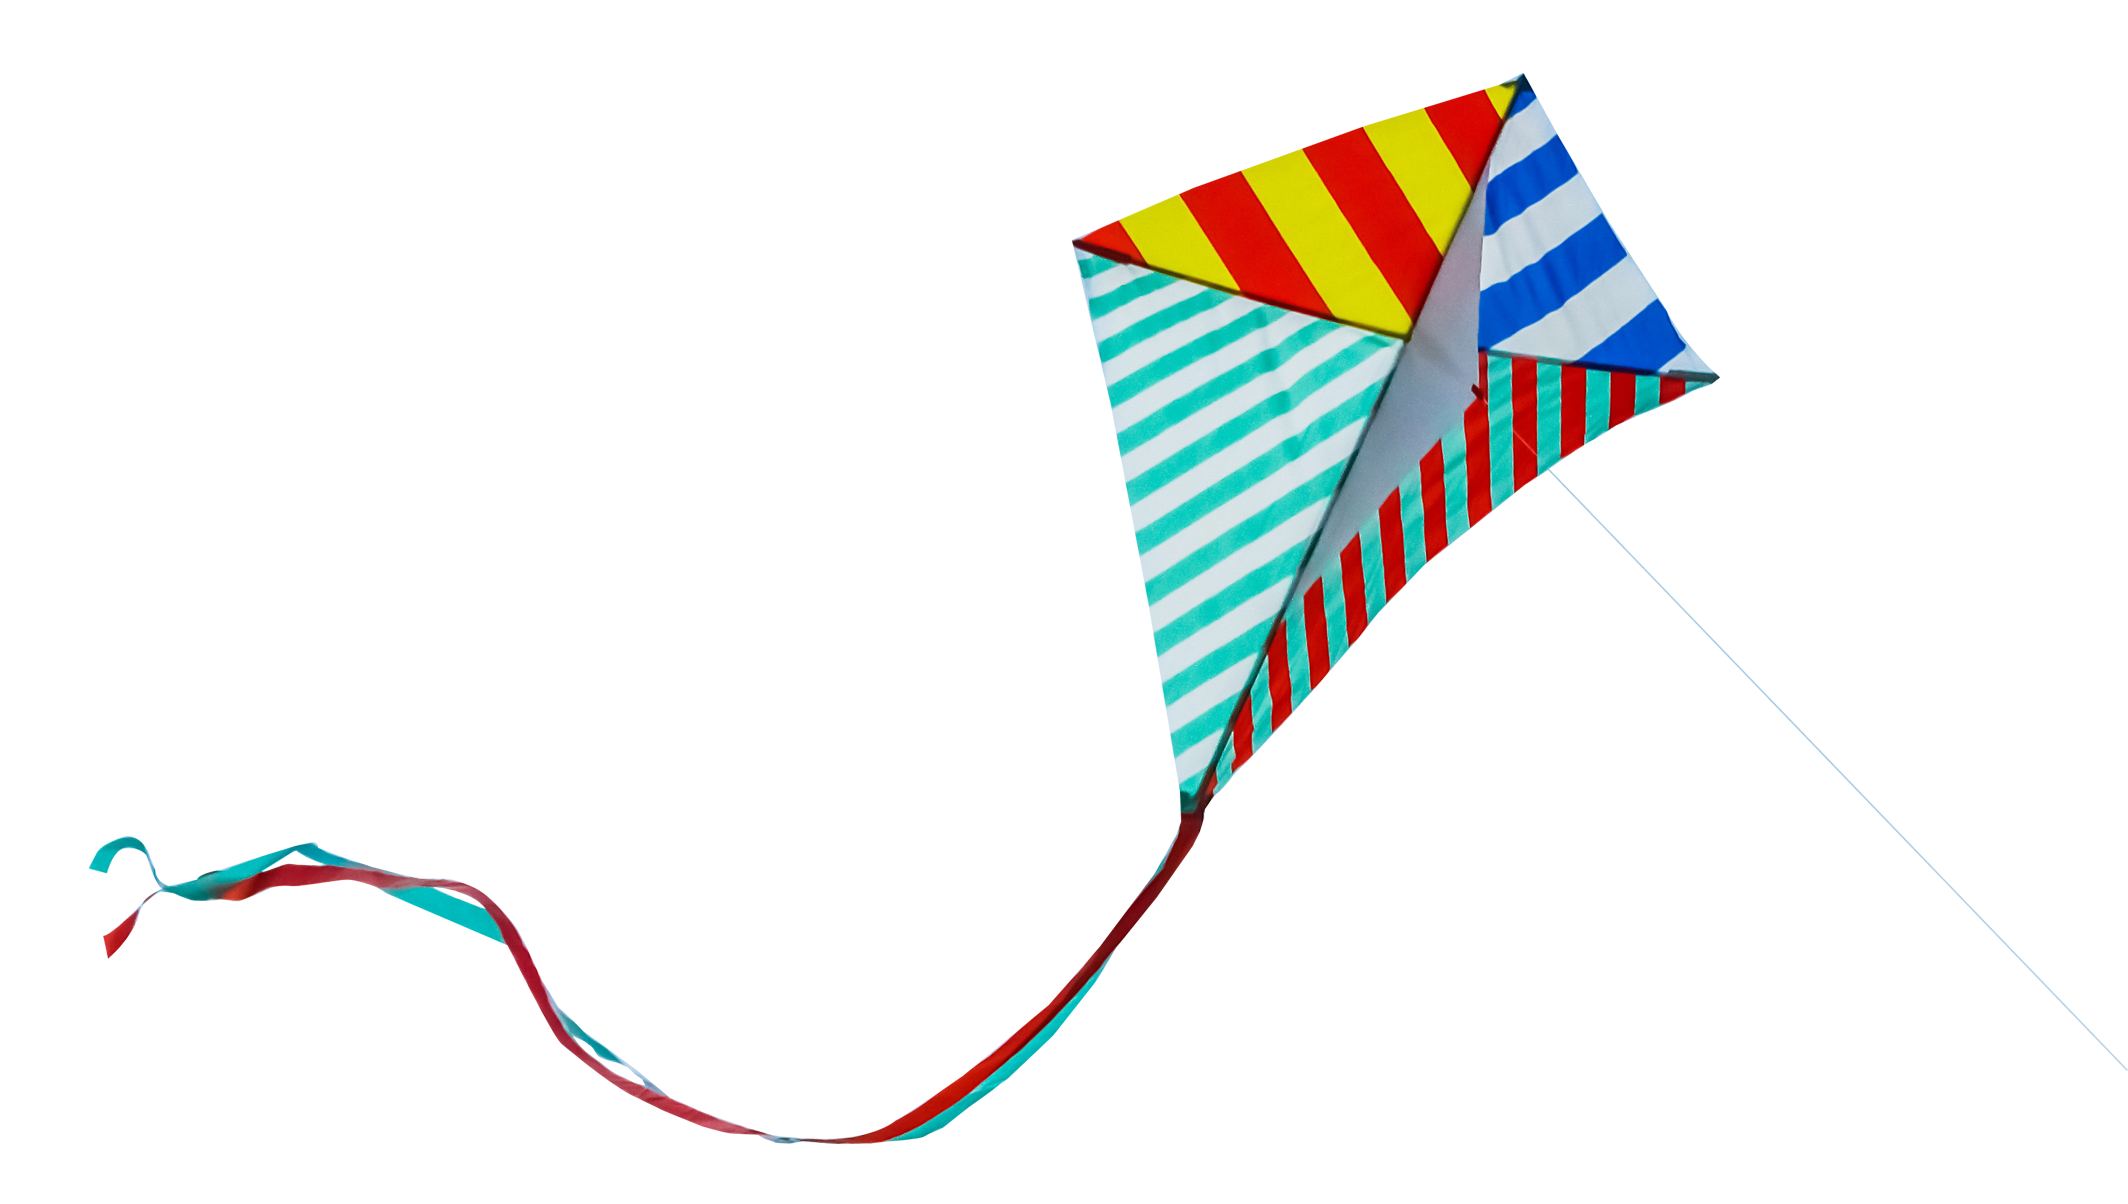 Festival clipart kites.  collection of kite